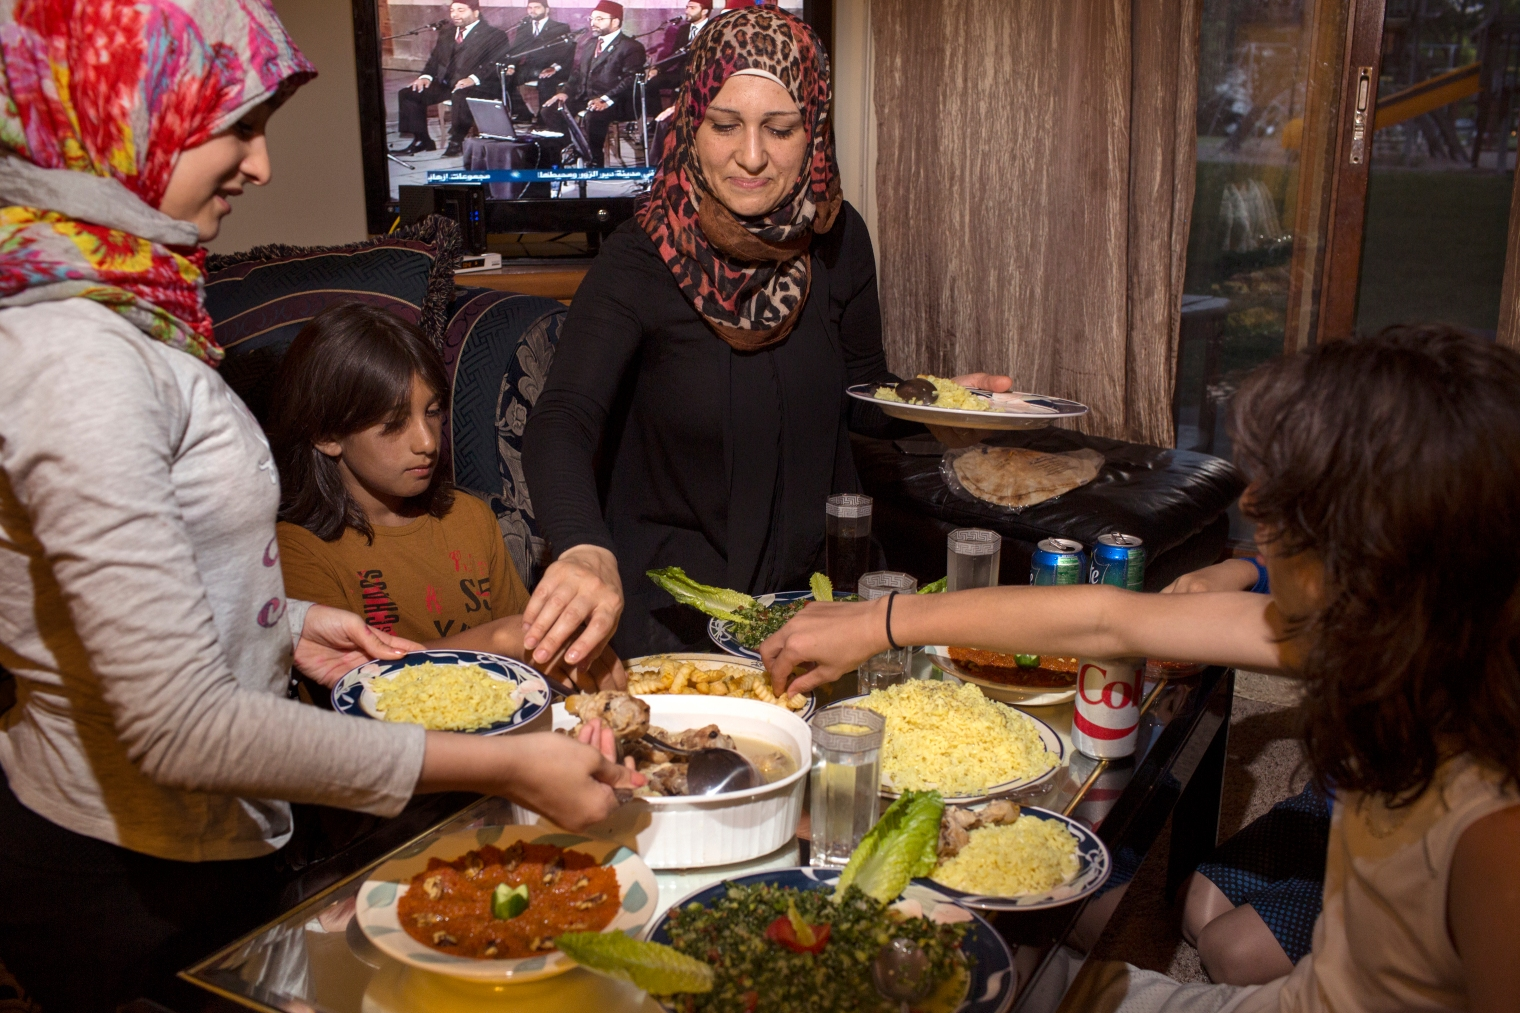 Ghazweh Aljabooli and her children eat together after breaking their fast during Ramadan at their apartment in West Des Moines, Iowa.